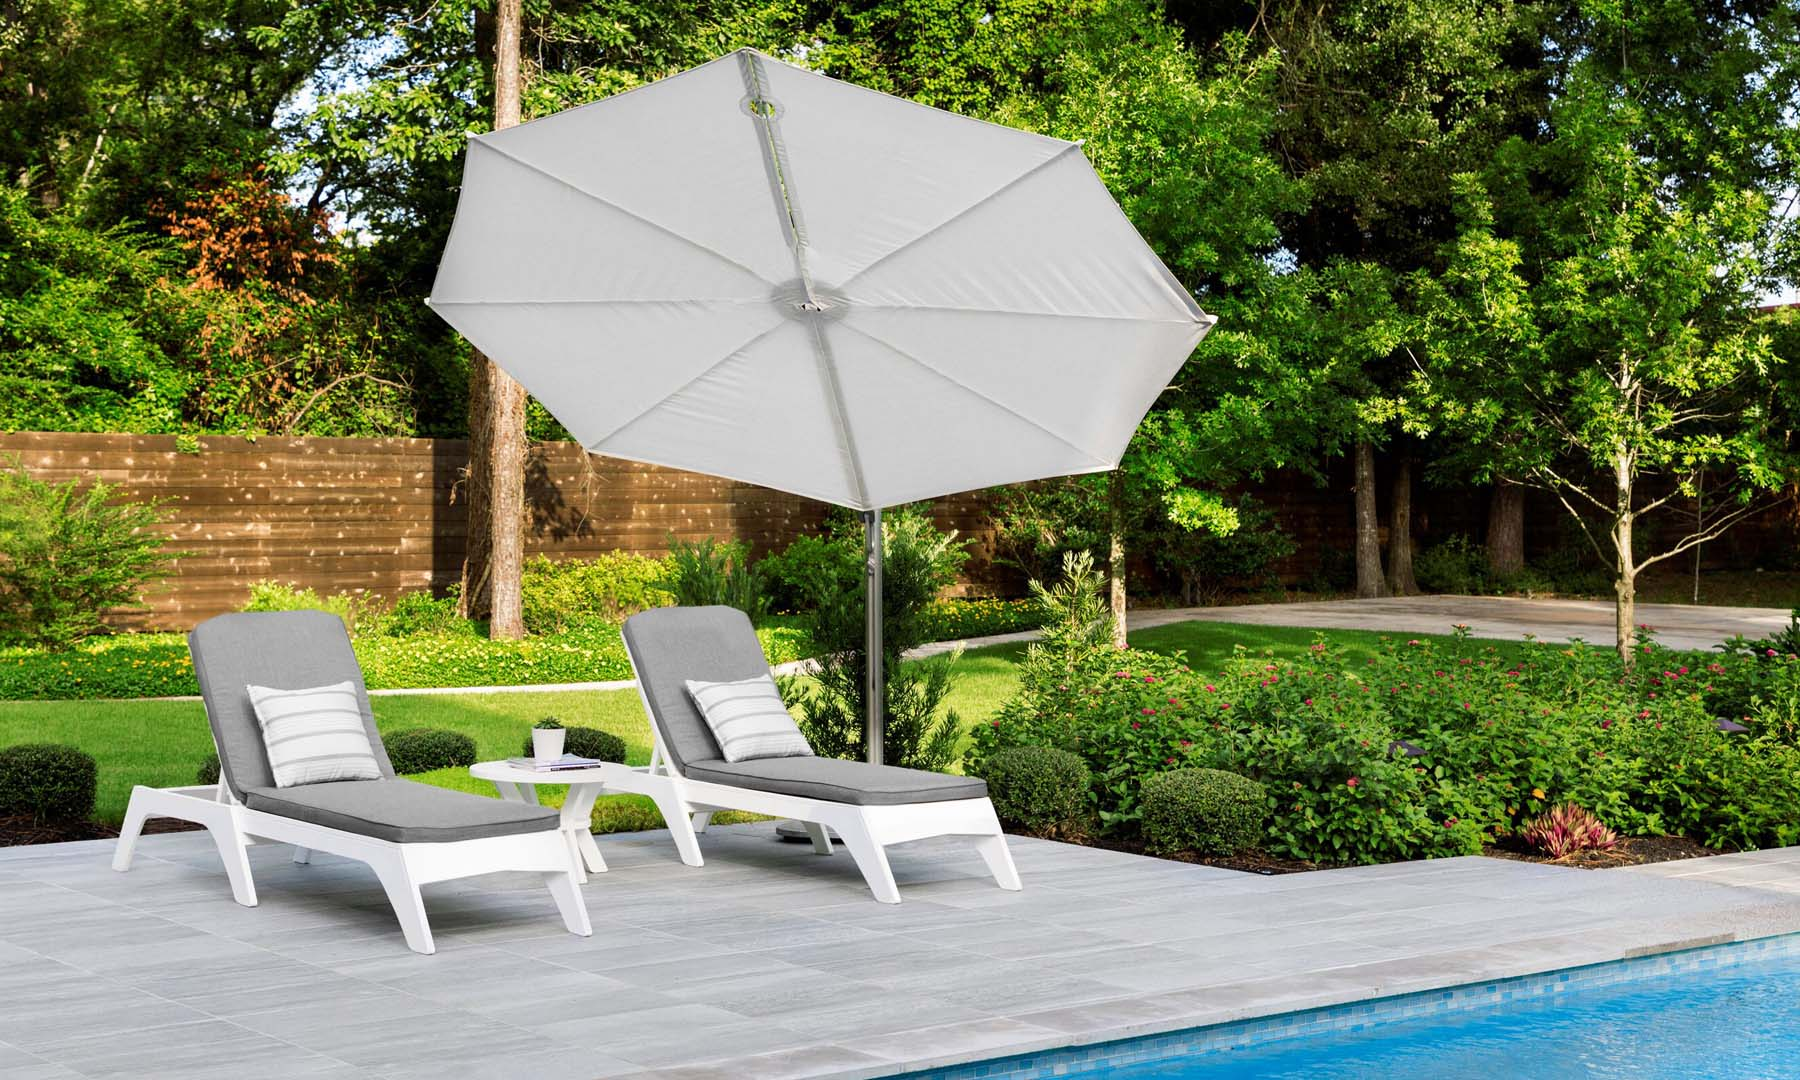 Ledge Lounger Umbrella gracing a Houston Swimming Pool